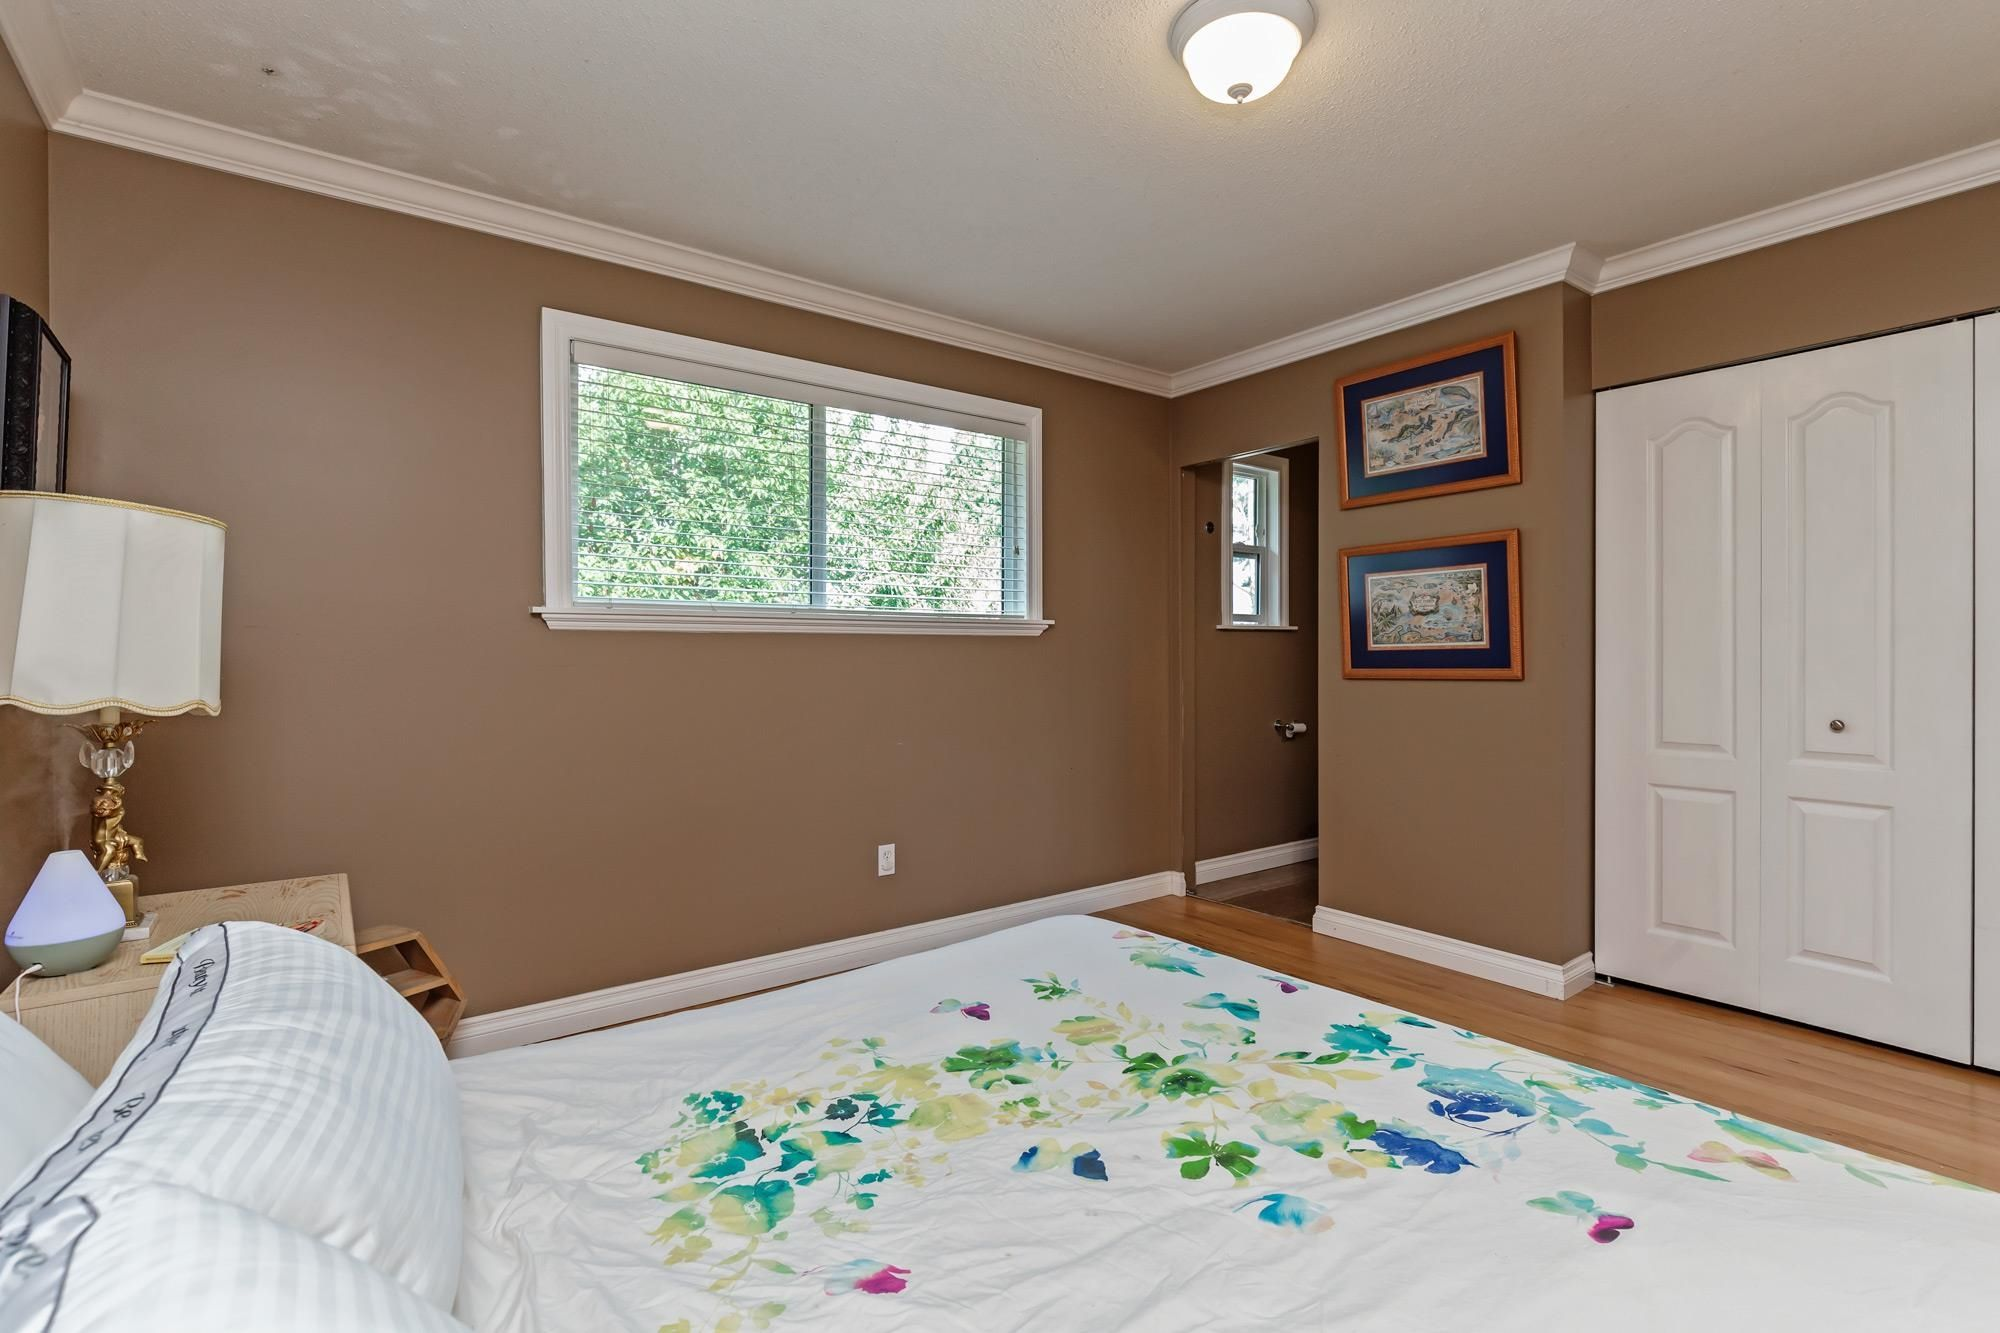 Photo 15: Photos: 32319 ATWATER Crescent in Abbotsford: Abbotsford West House for sale : MLS®# R2609136